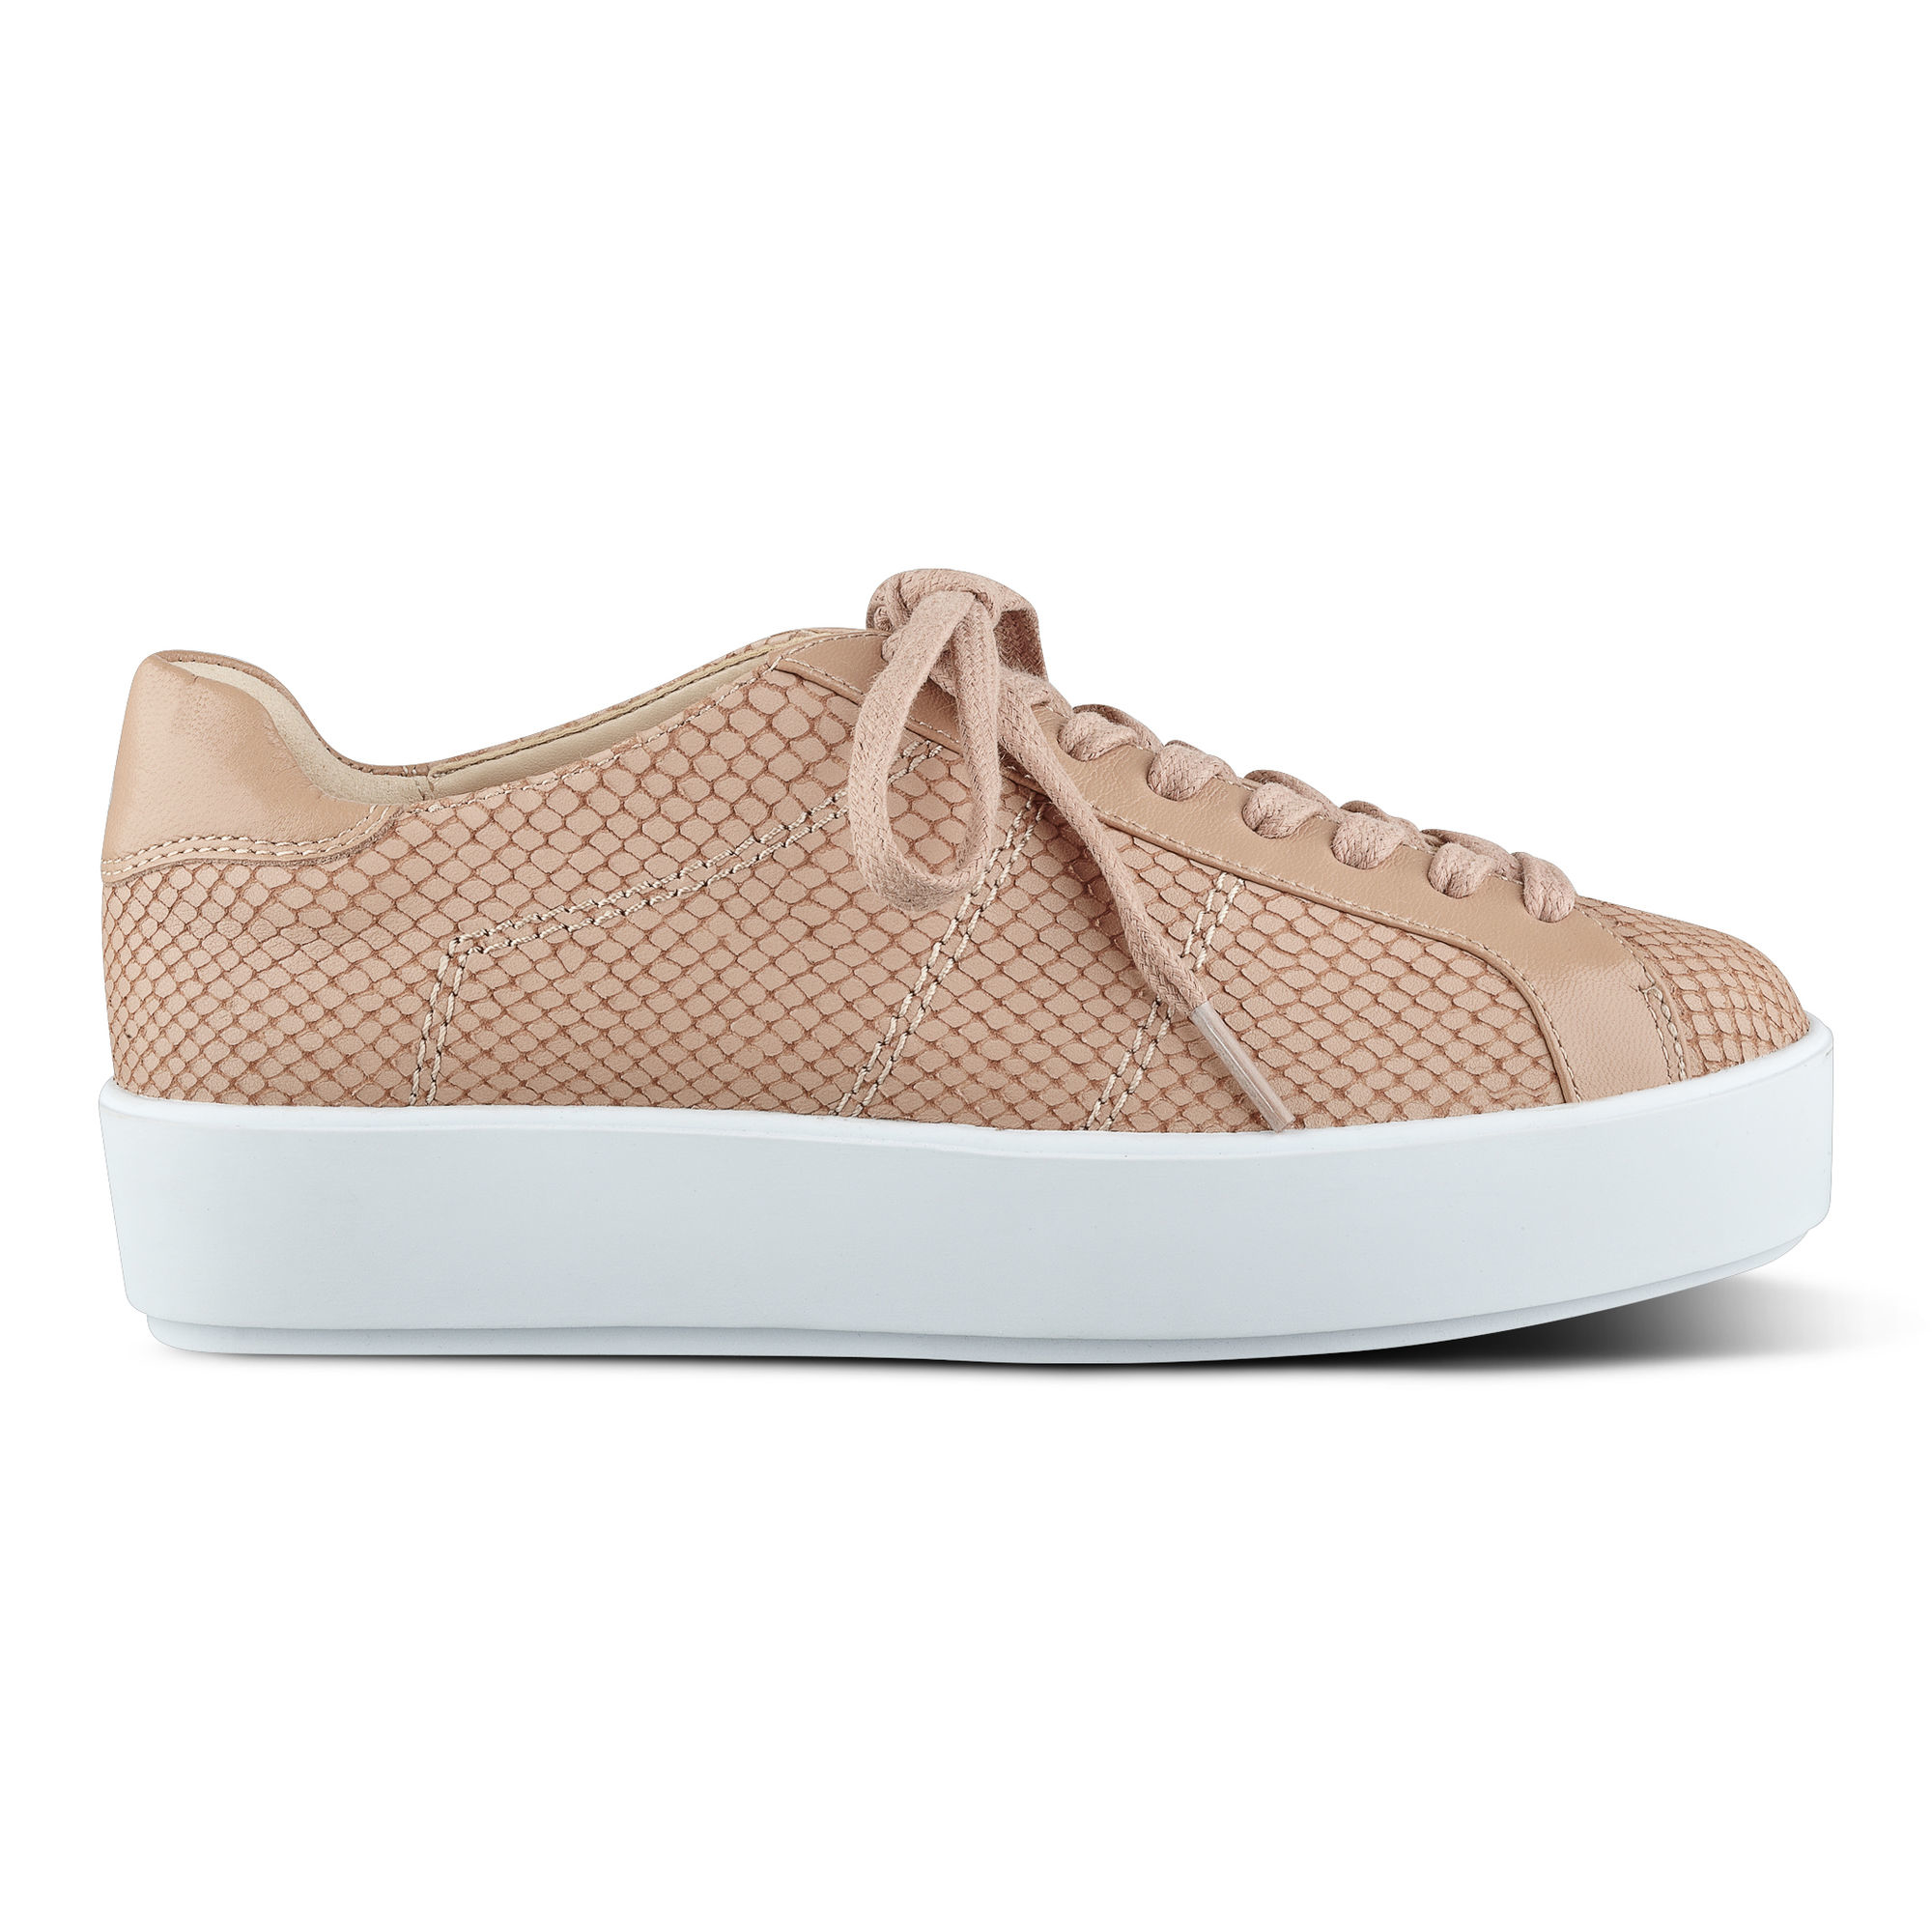 NINE WEST Sneakers best wholesale for sale PNTCi